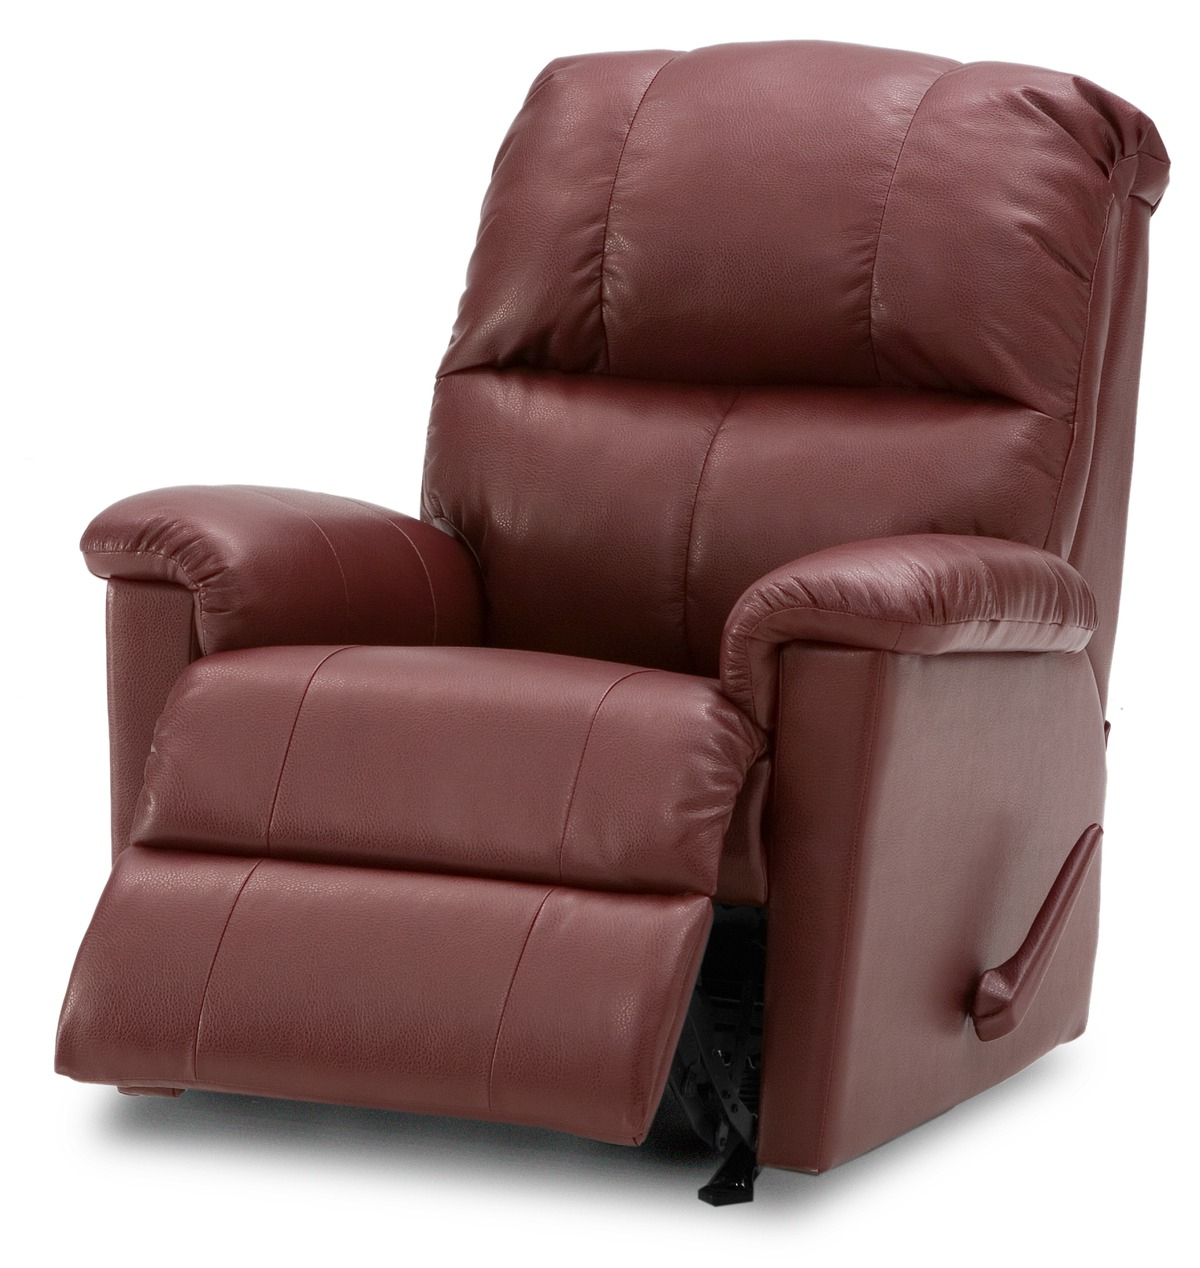 Most Current Palliser® Furniture Gilmore Swivel Rocker Recliner 43143 33 Inside Swivel Tobacco Leather Chairs (View 19 of 20)